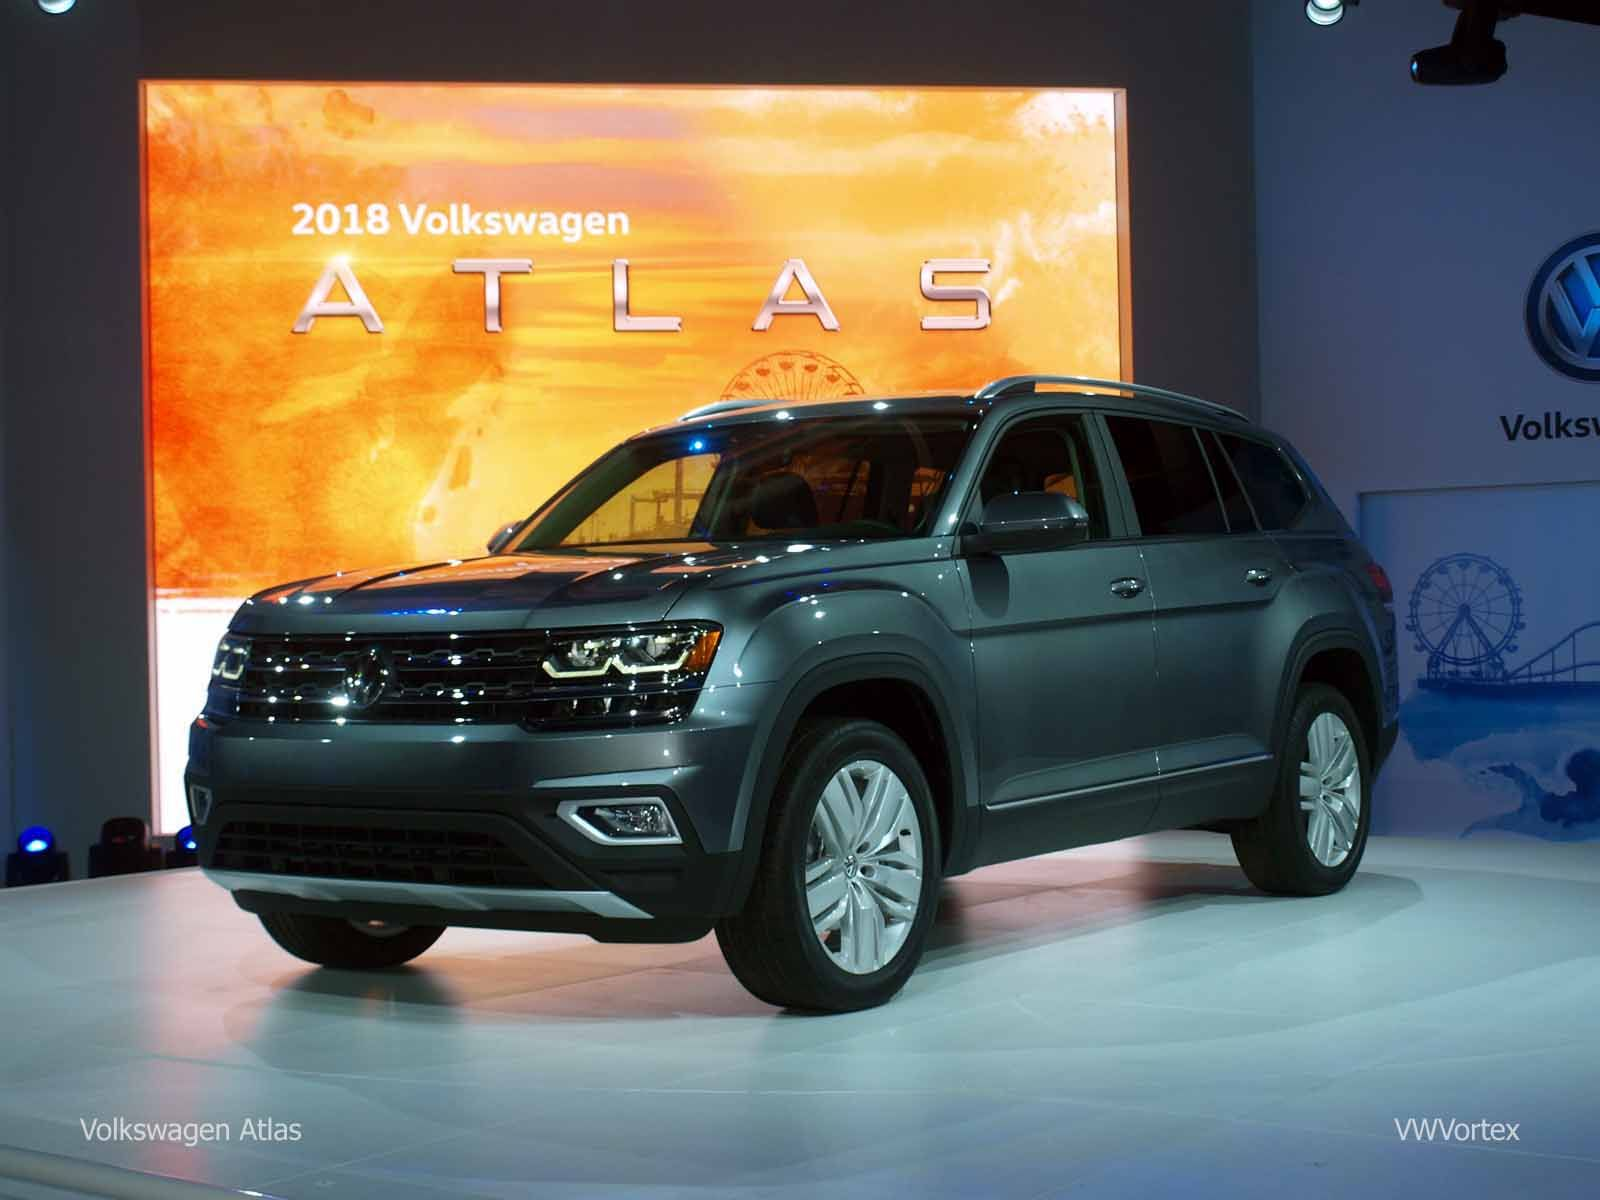 The all new 2018 volkswagen atlas weekend edition concept is ready for your weekend camping adventures a fun adventuremobile right from the factor